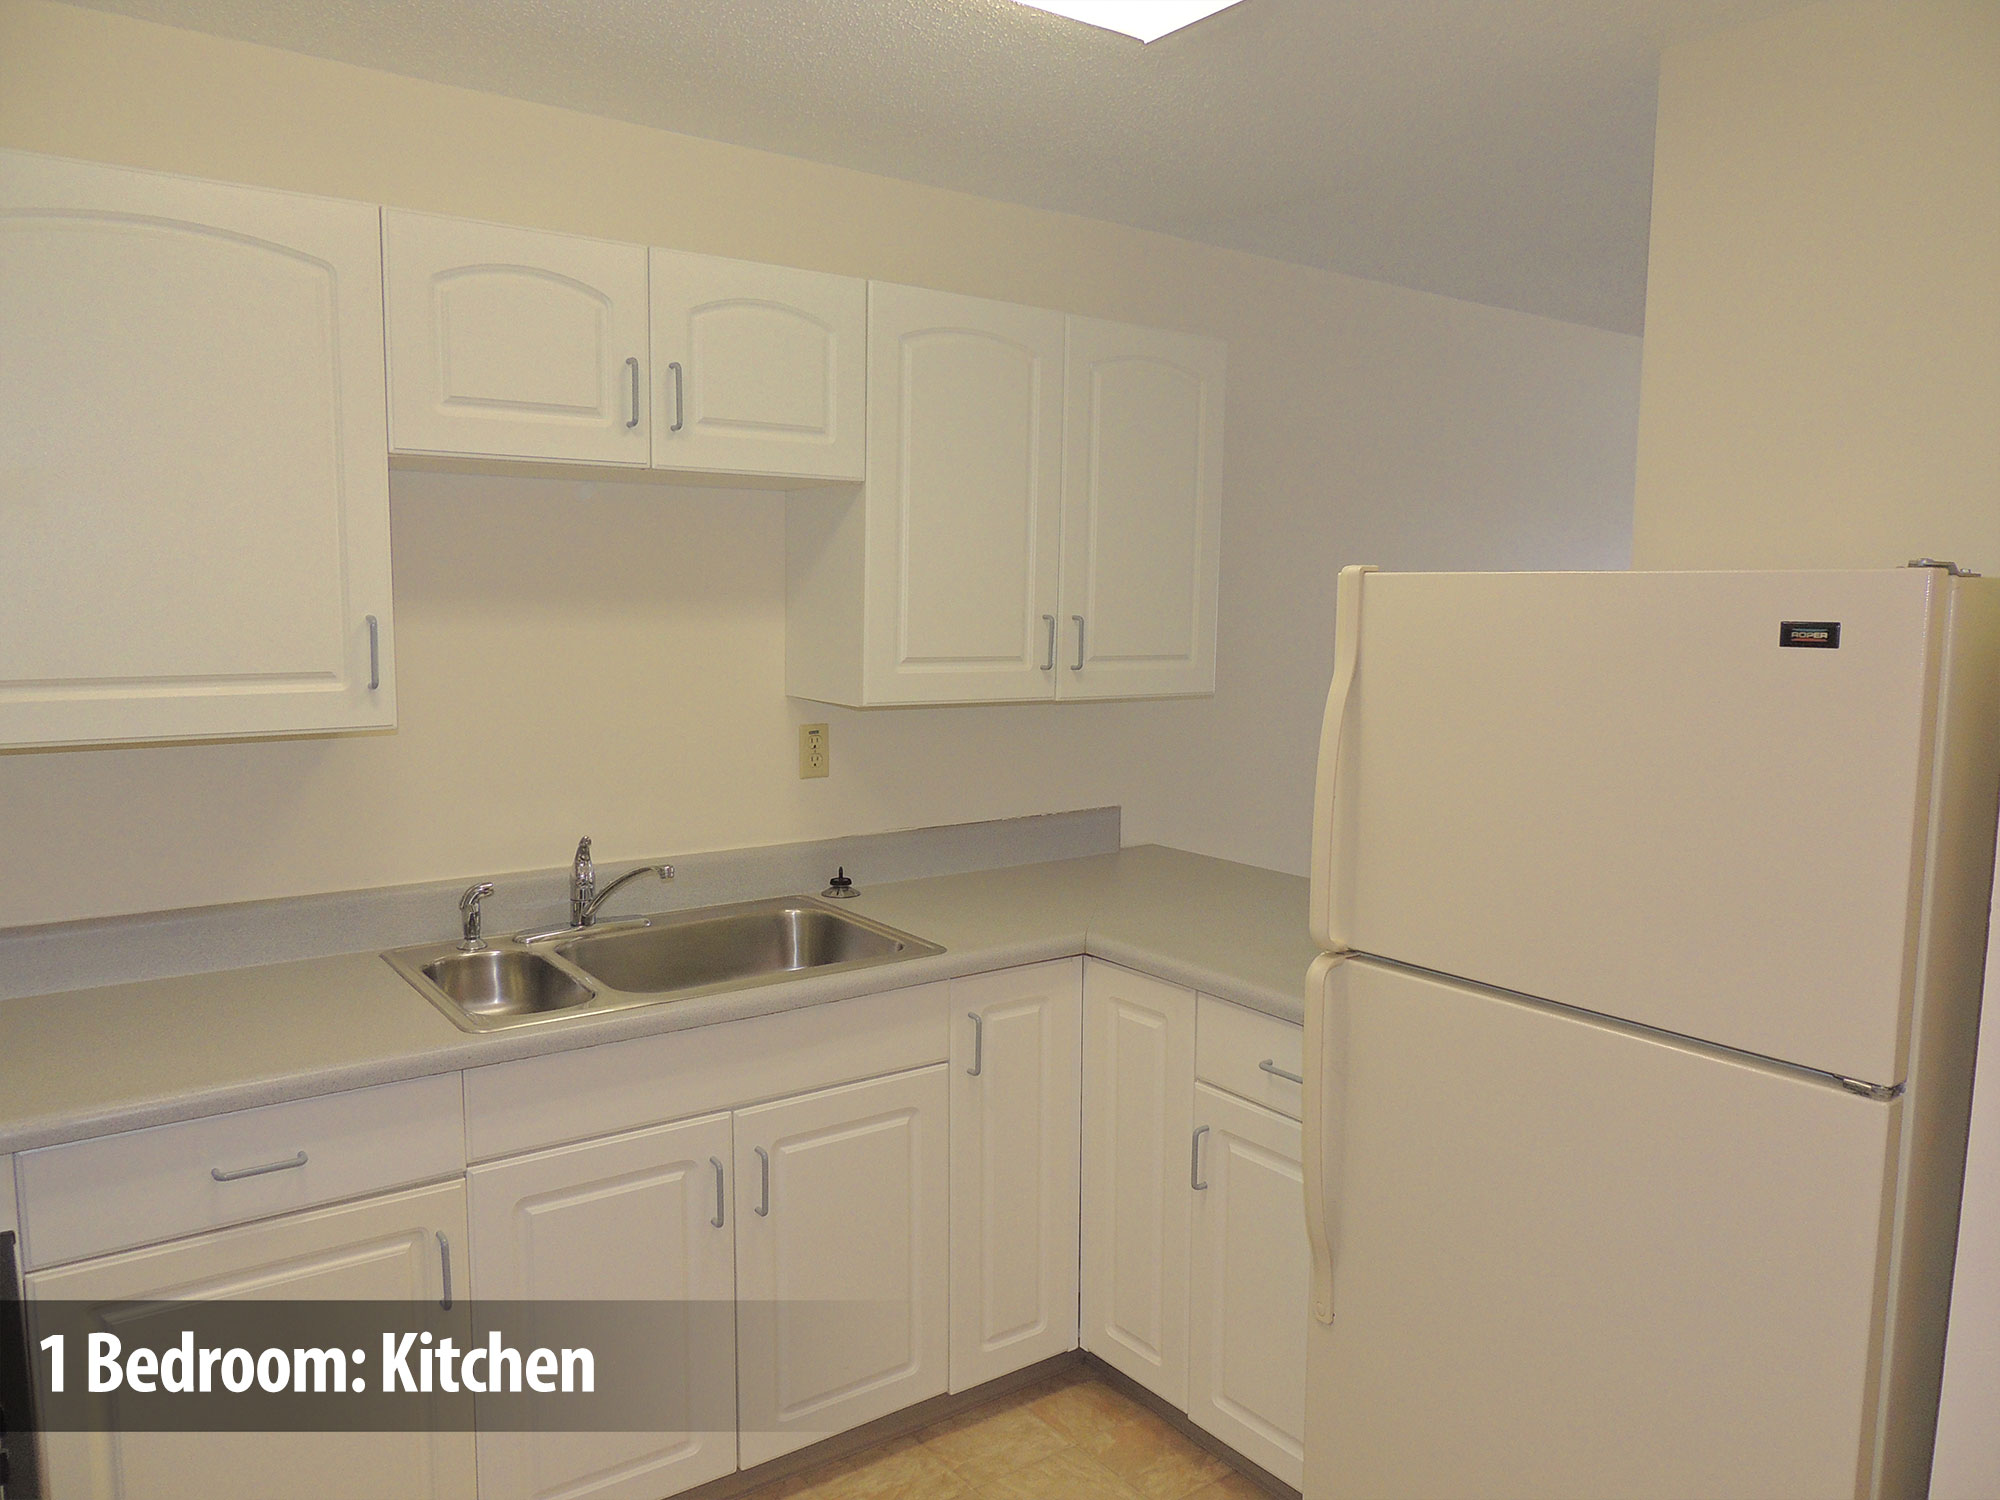 1bedroom-kitchen2